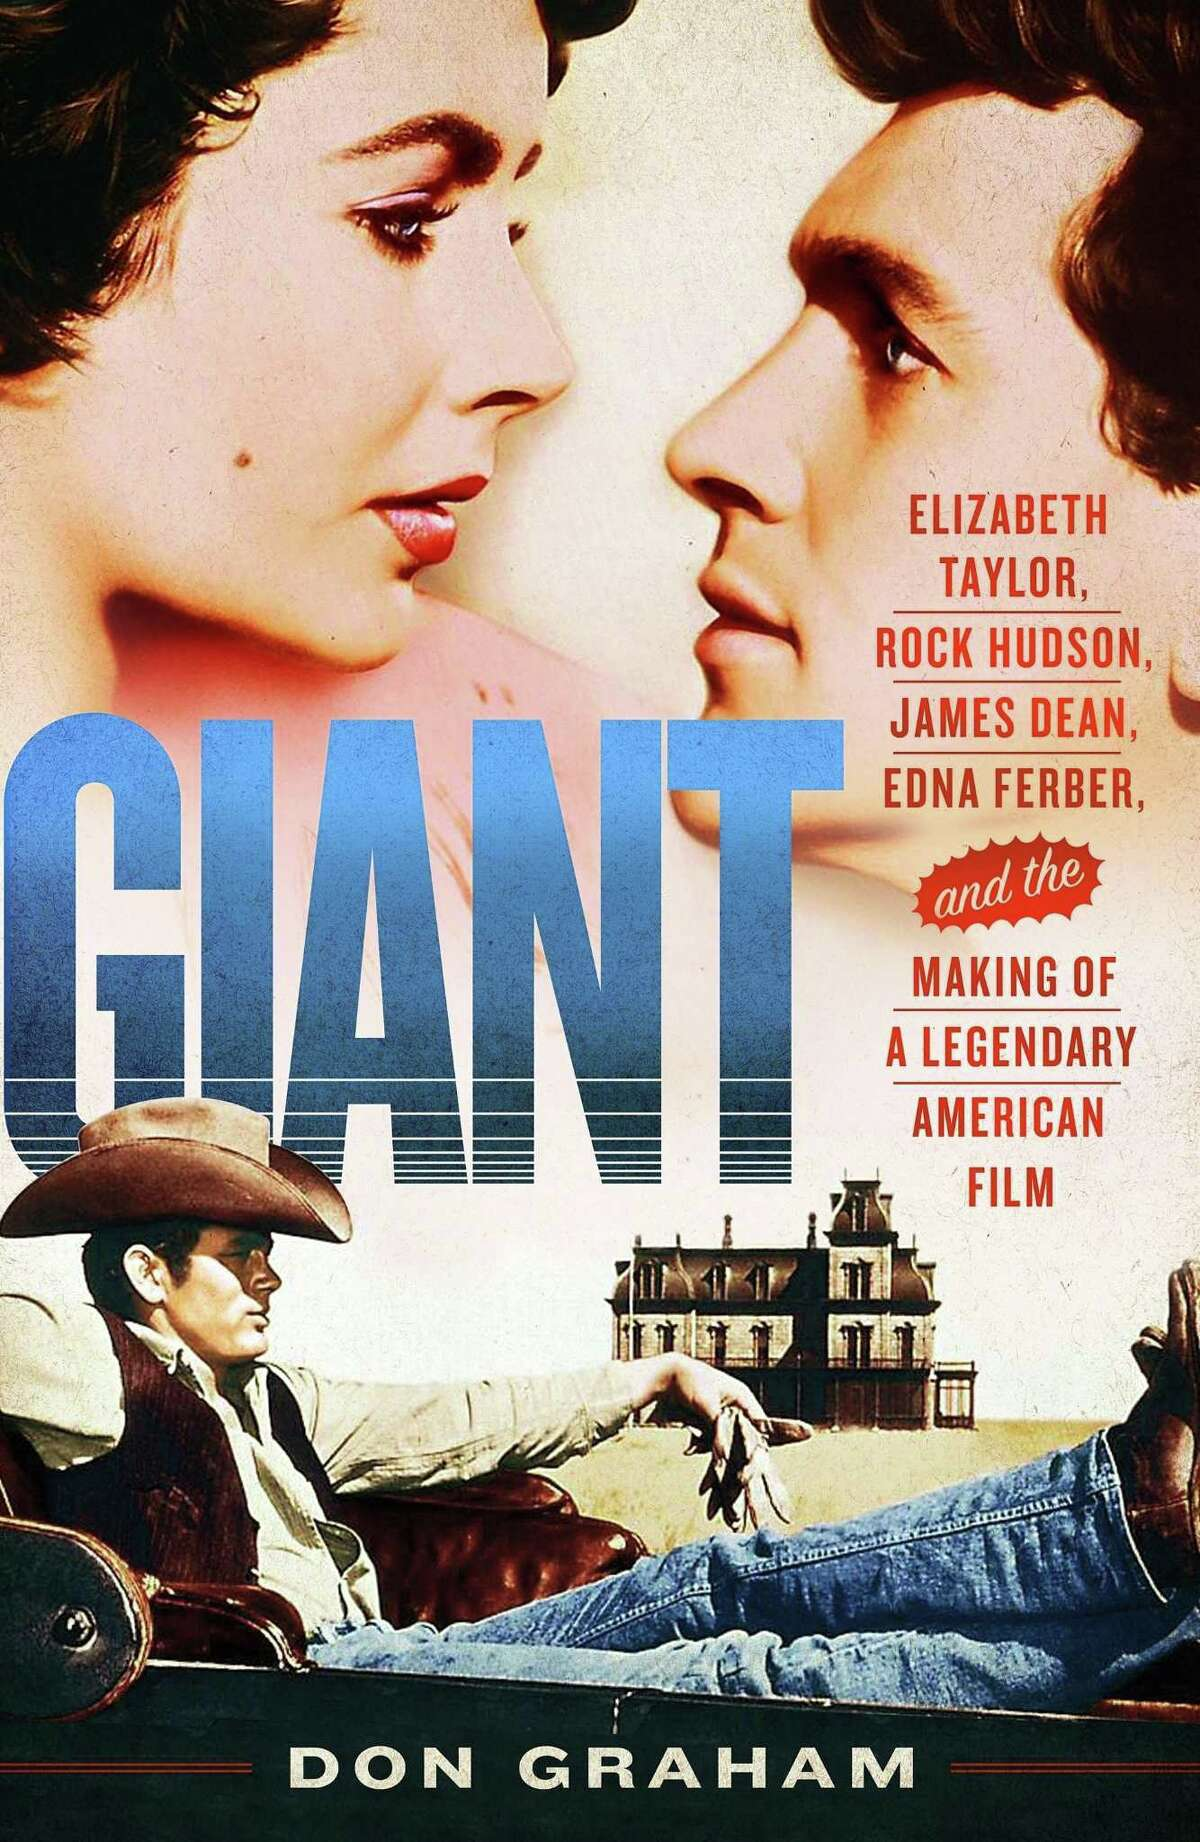 """This cover image released by St. Martin's Press shows """"Giant: Elizabeth Taylor, Rock Hudson, James Dean, Edna Ferber, and the Making of a Legendary American Film,"""" by Don Graham."""